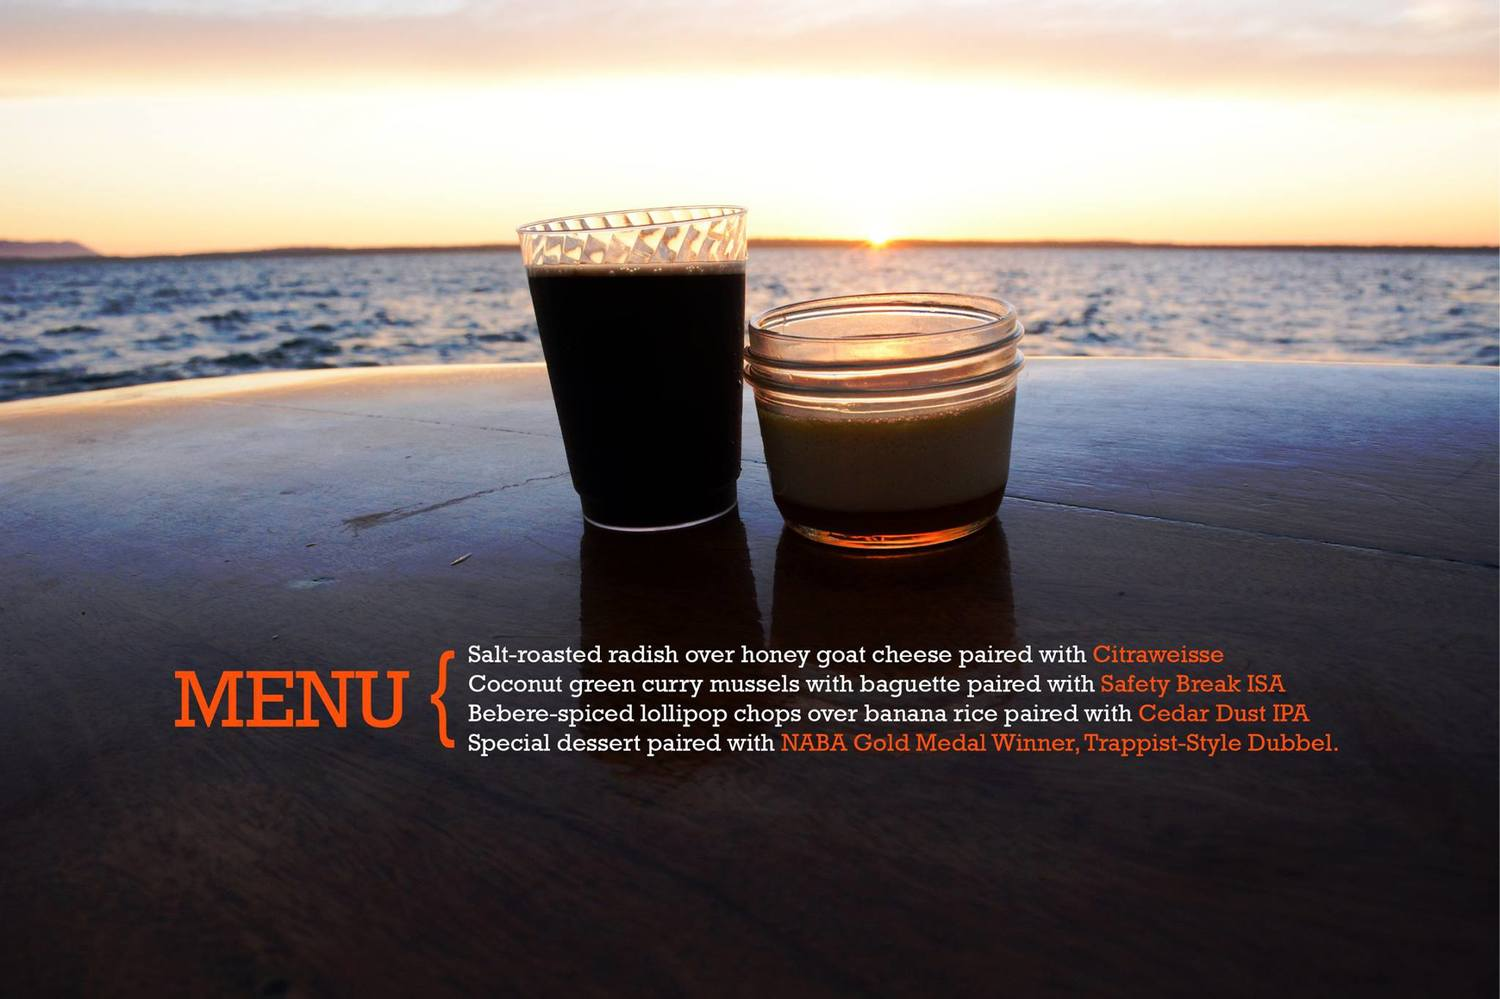 Zodiac Dinner Sail   I worked closely with the staff of the Schooner Zodiac to plan, brand and market a sunset beer pairing cruise. Here is a sample digital ad image I created and promoted online. Sold out in a matter of hours, this was one of Boundary's most viral social media campaigns to date.  More...